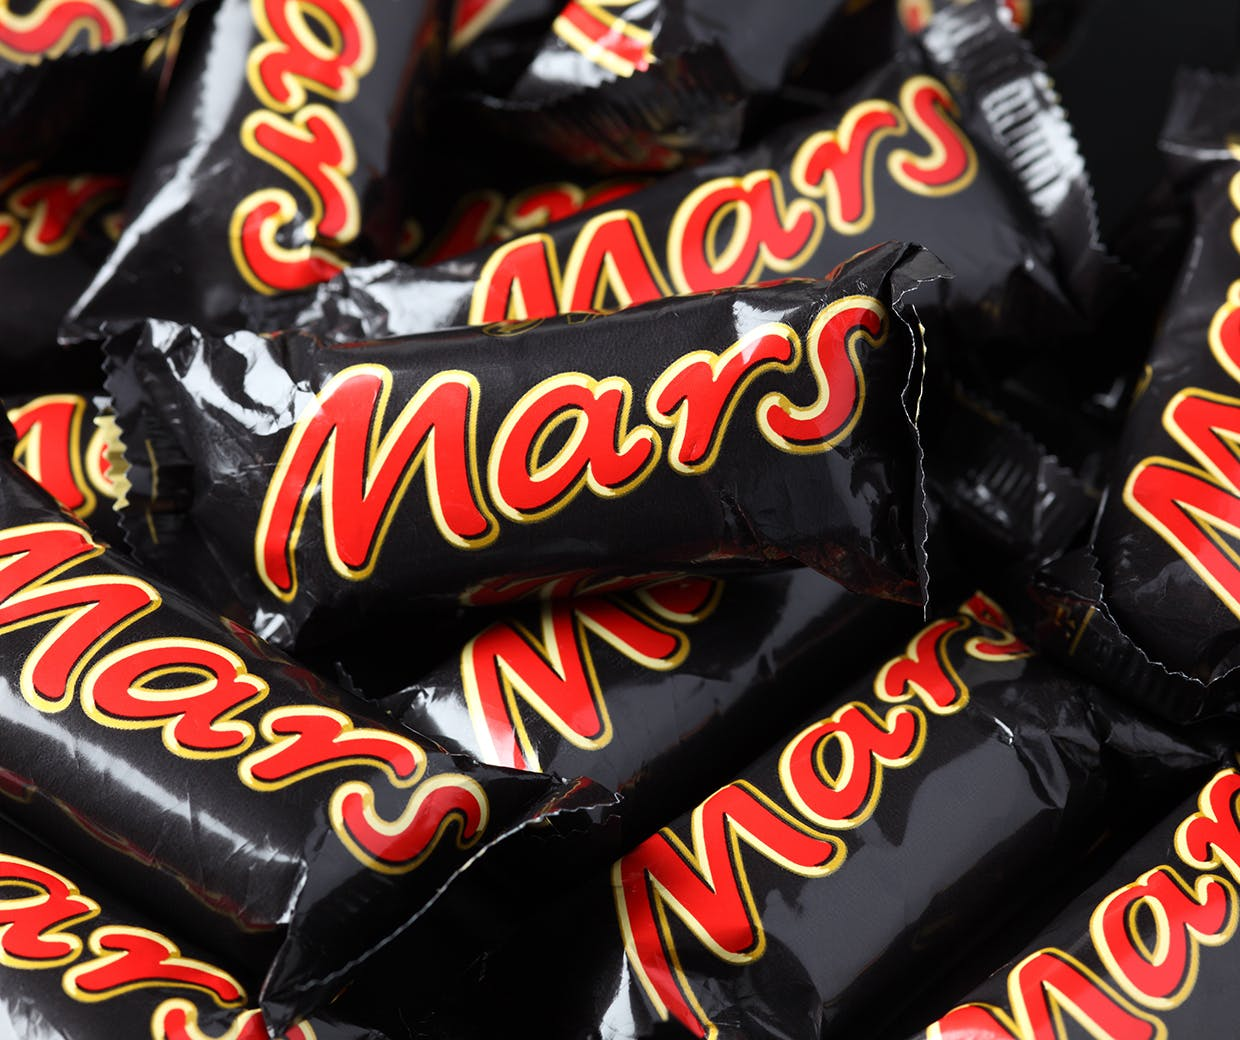 Mars's three-point strategy to improve gender equality in its advertising